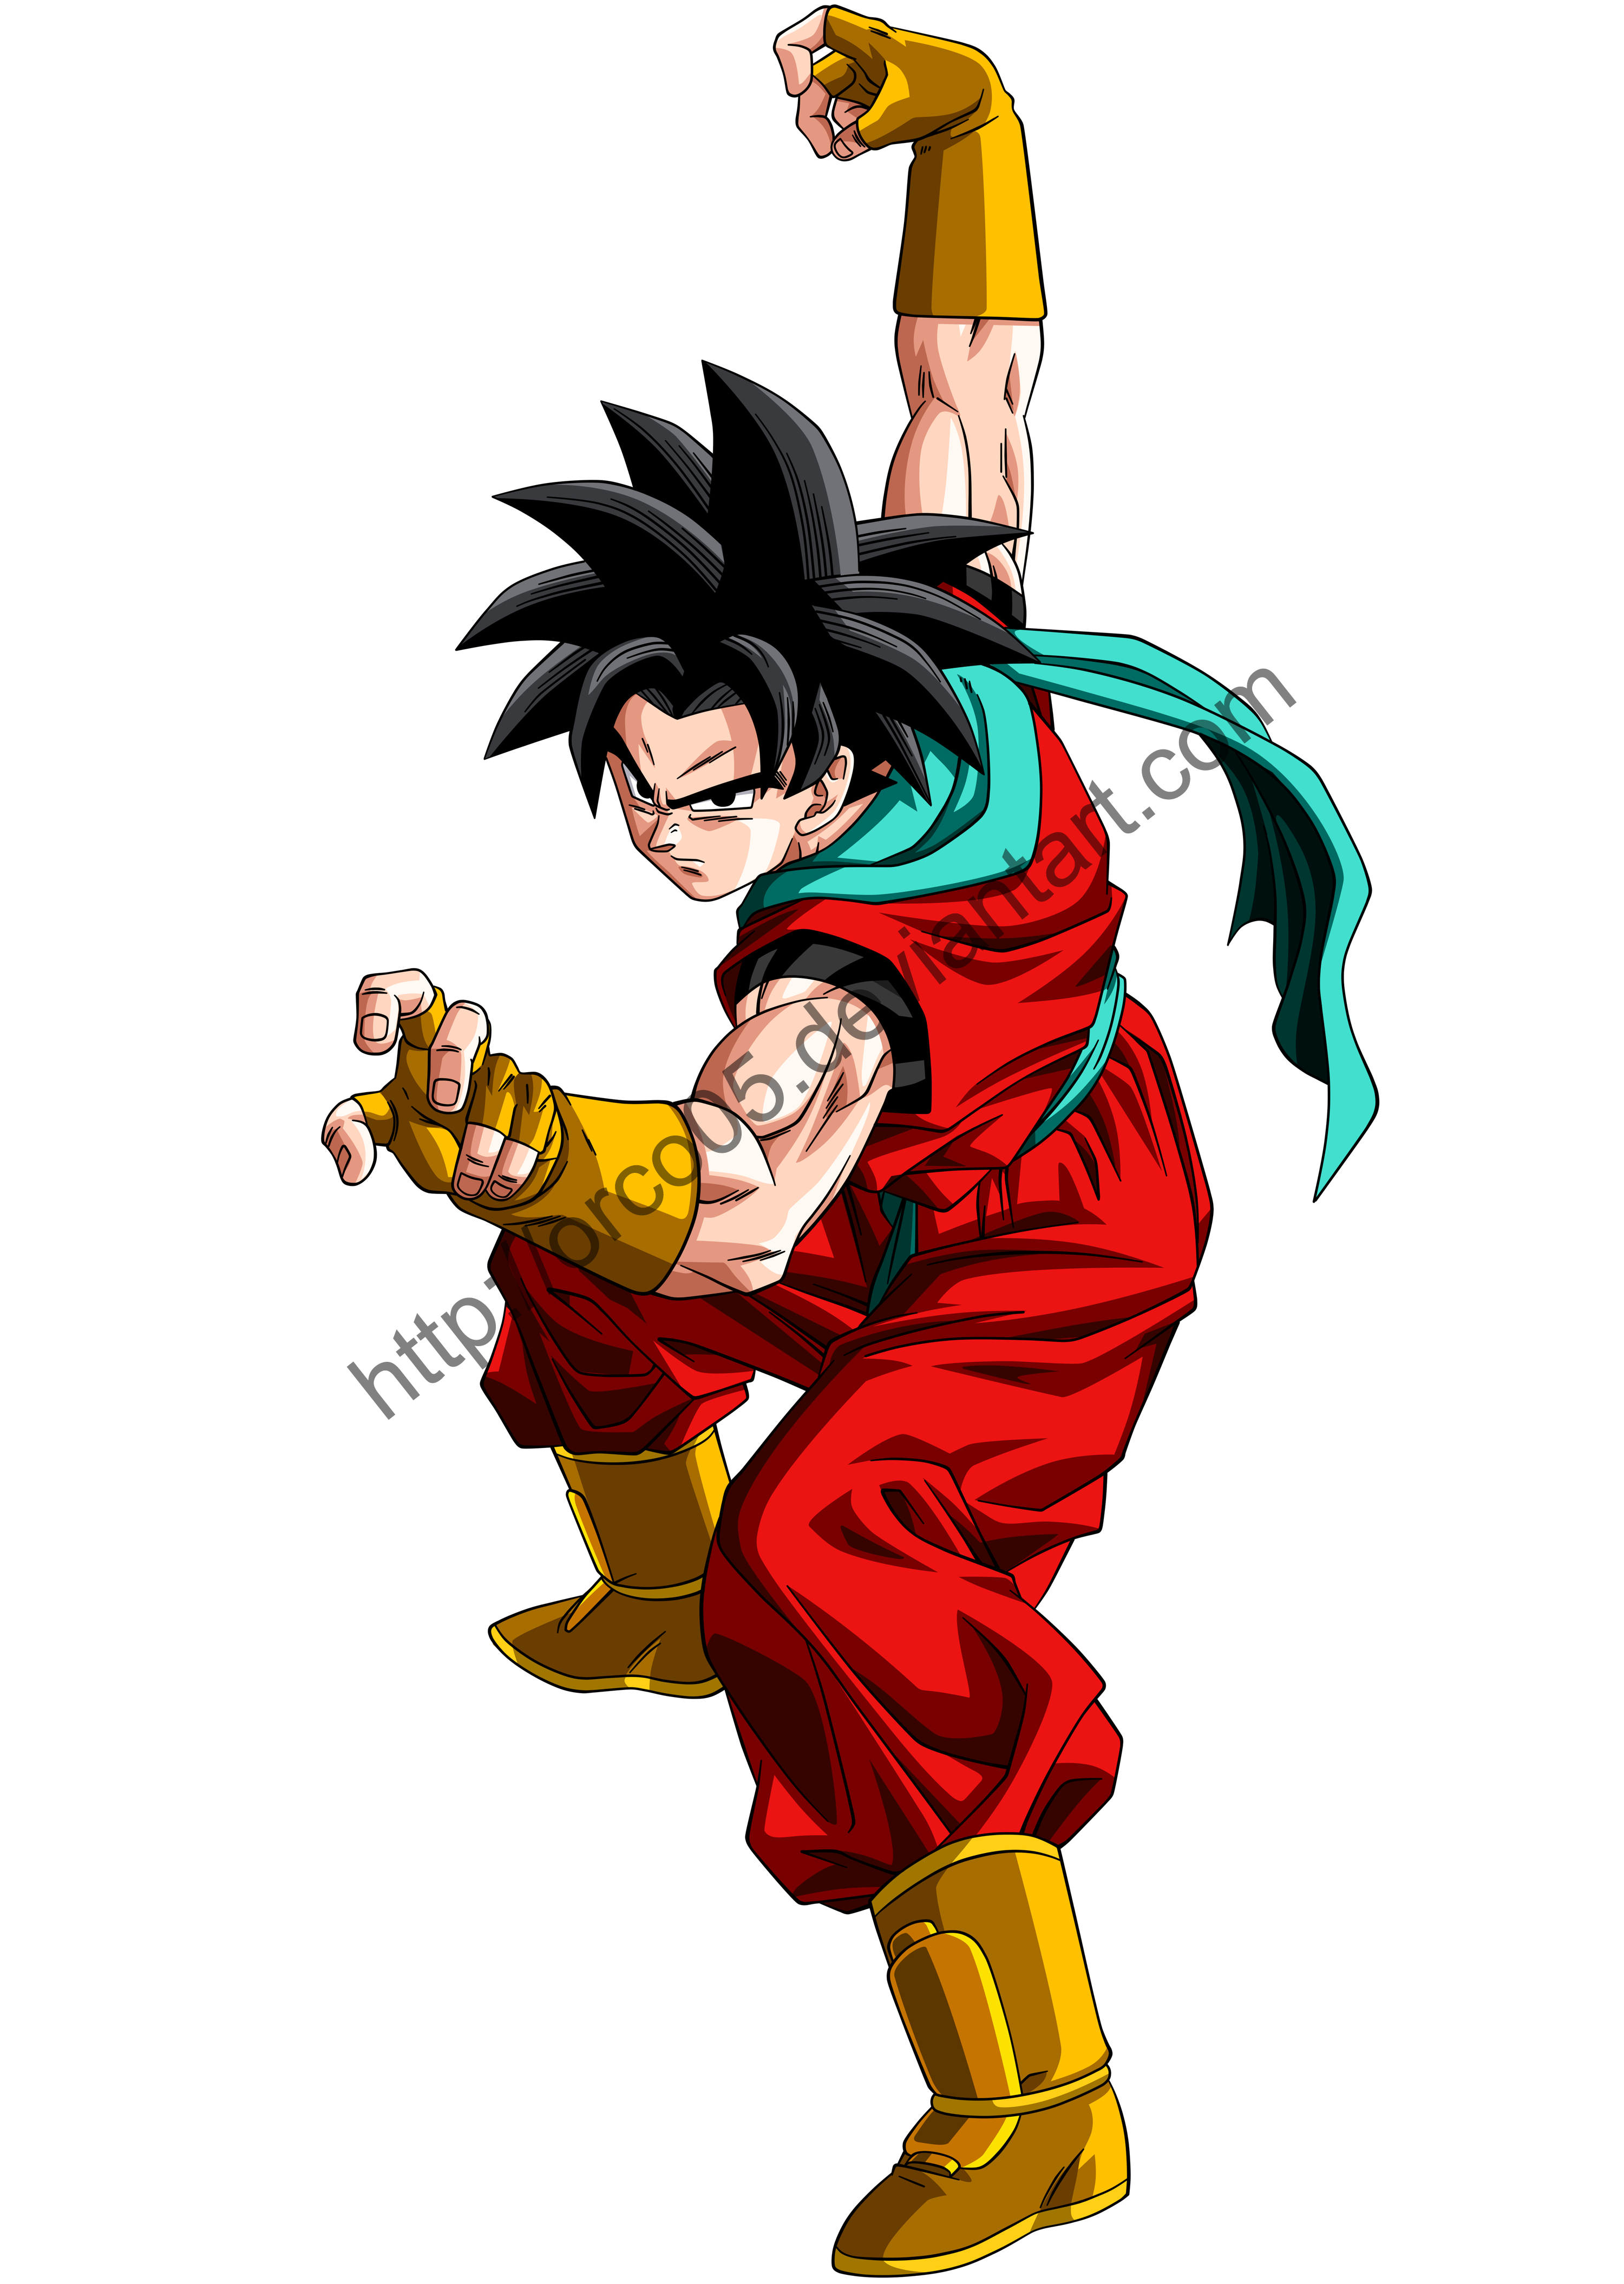 David - Dragon Ball Z OC - v.2 by orco05